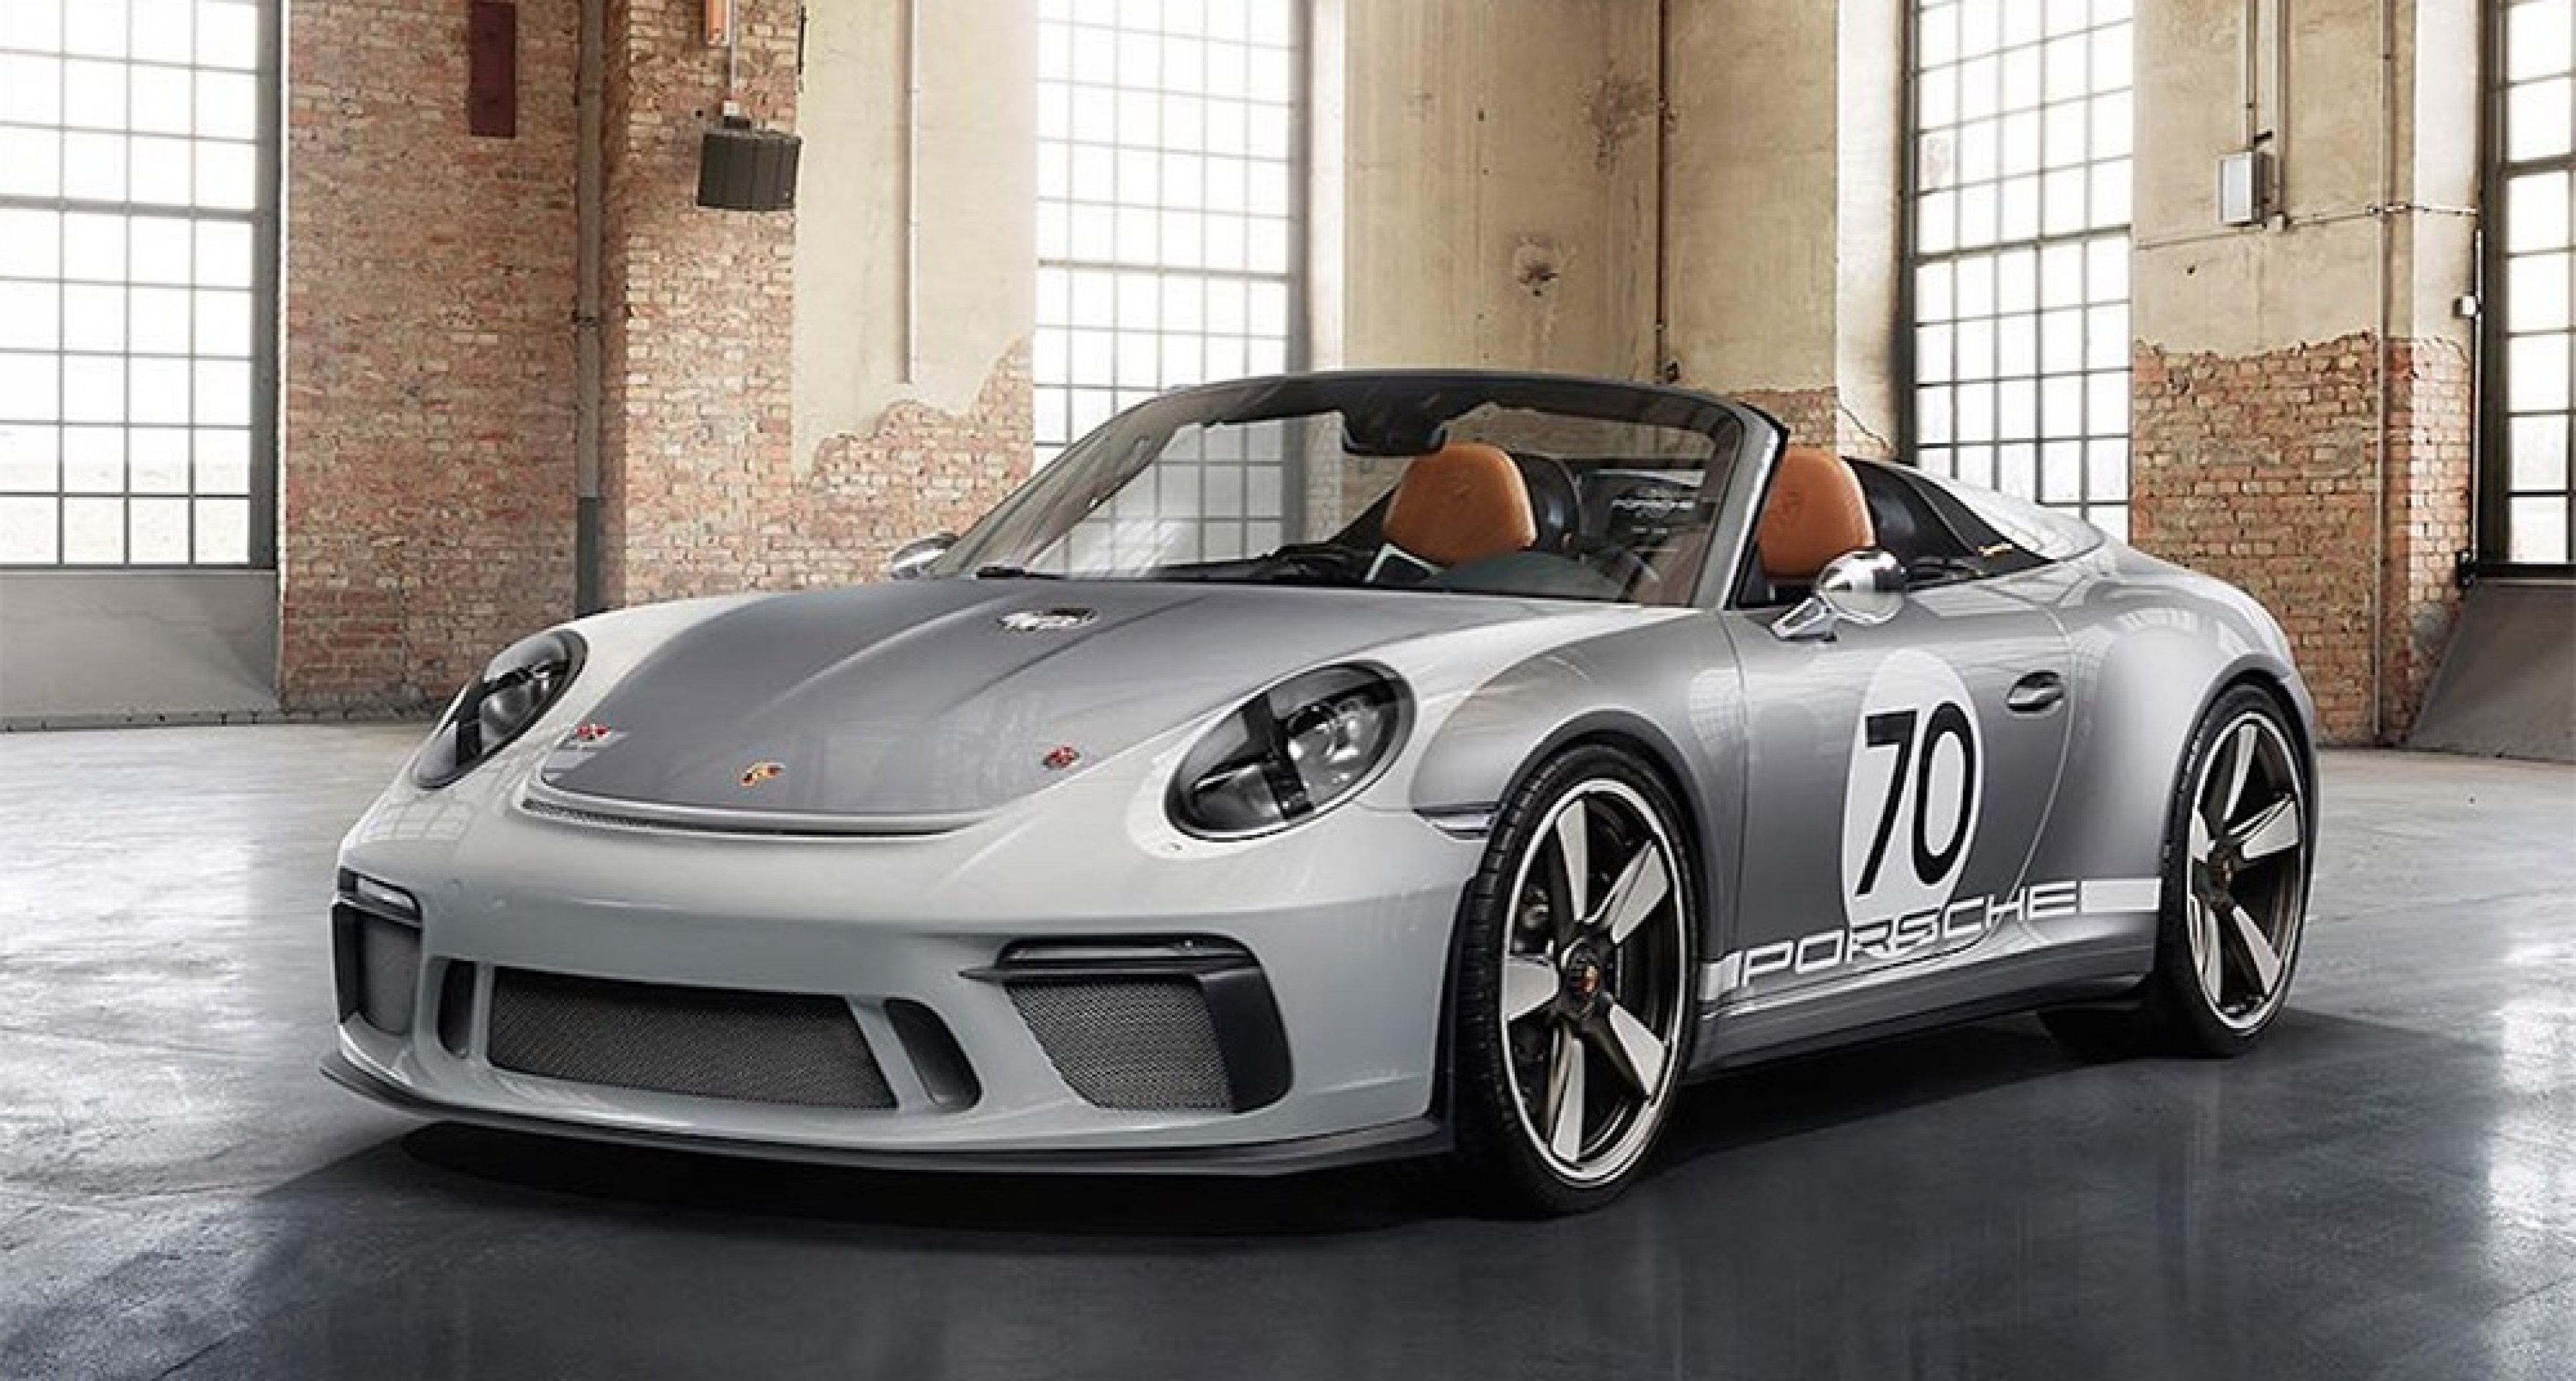 Porsche Revives The Speedster As A 70th Birthday Present To Itself